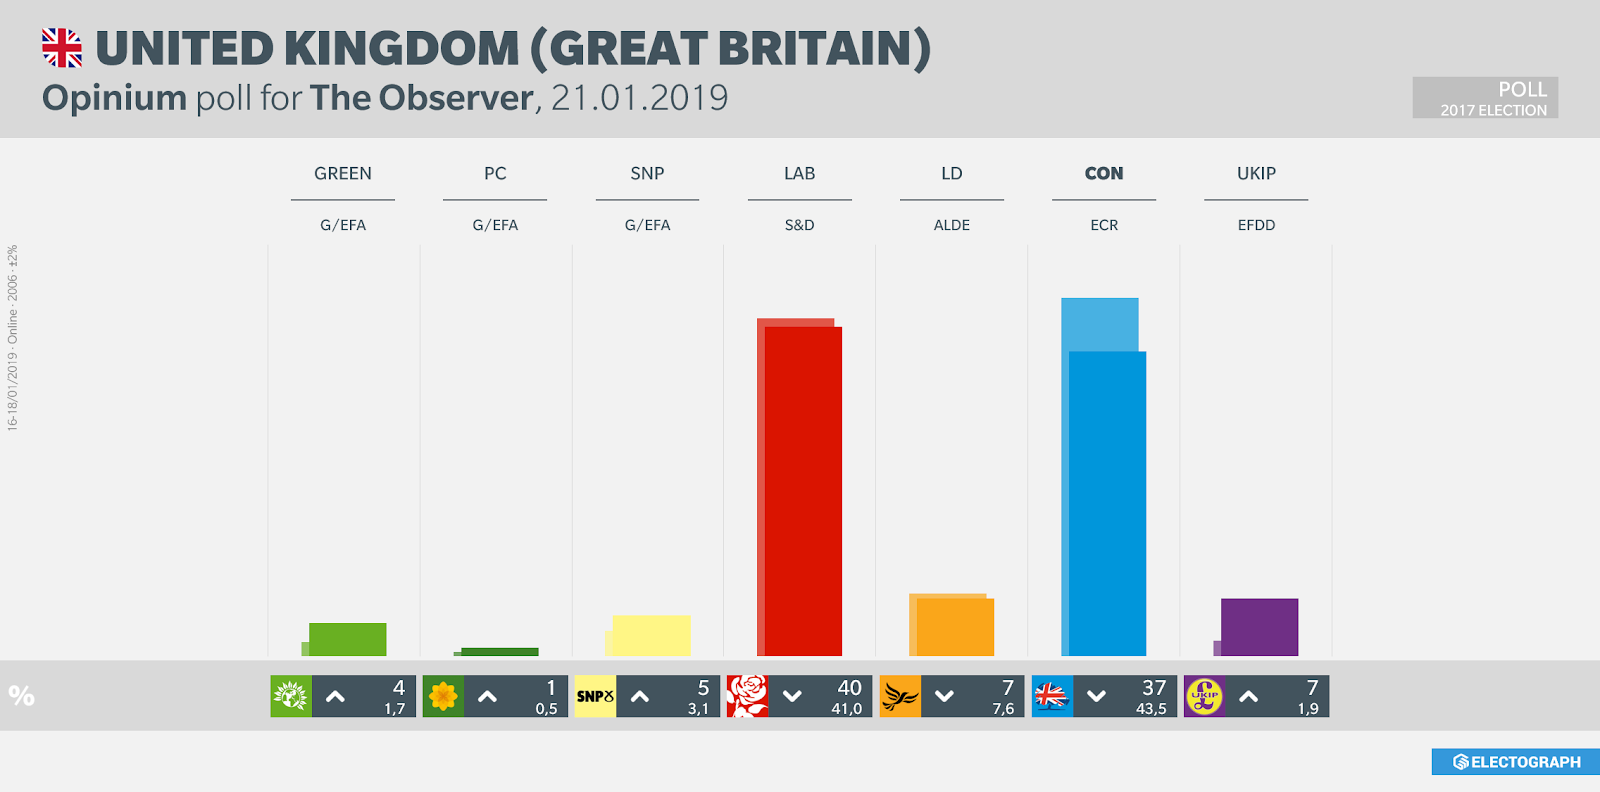 UNITED KINGDOM: Opinium poll chart for The Observer, 20 January 2019